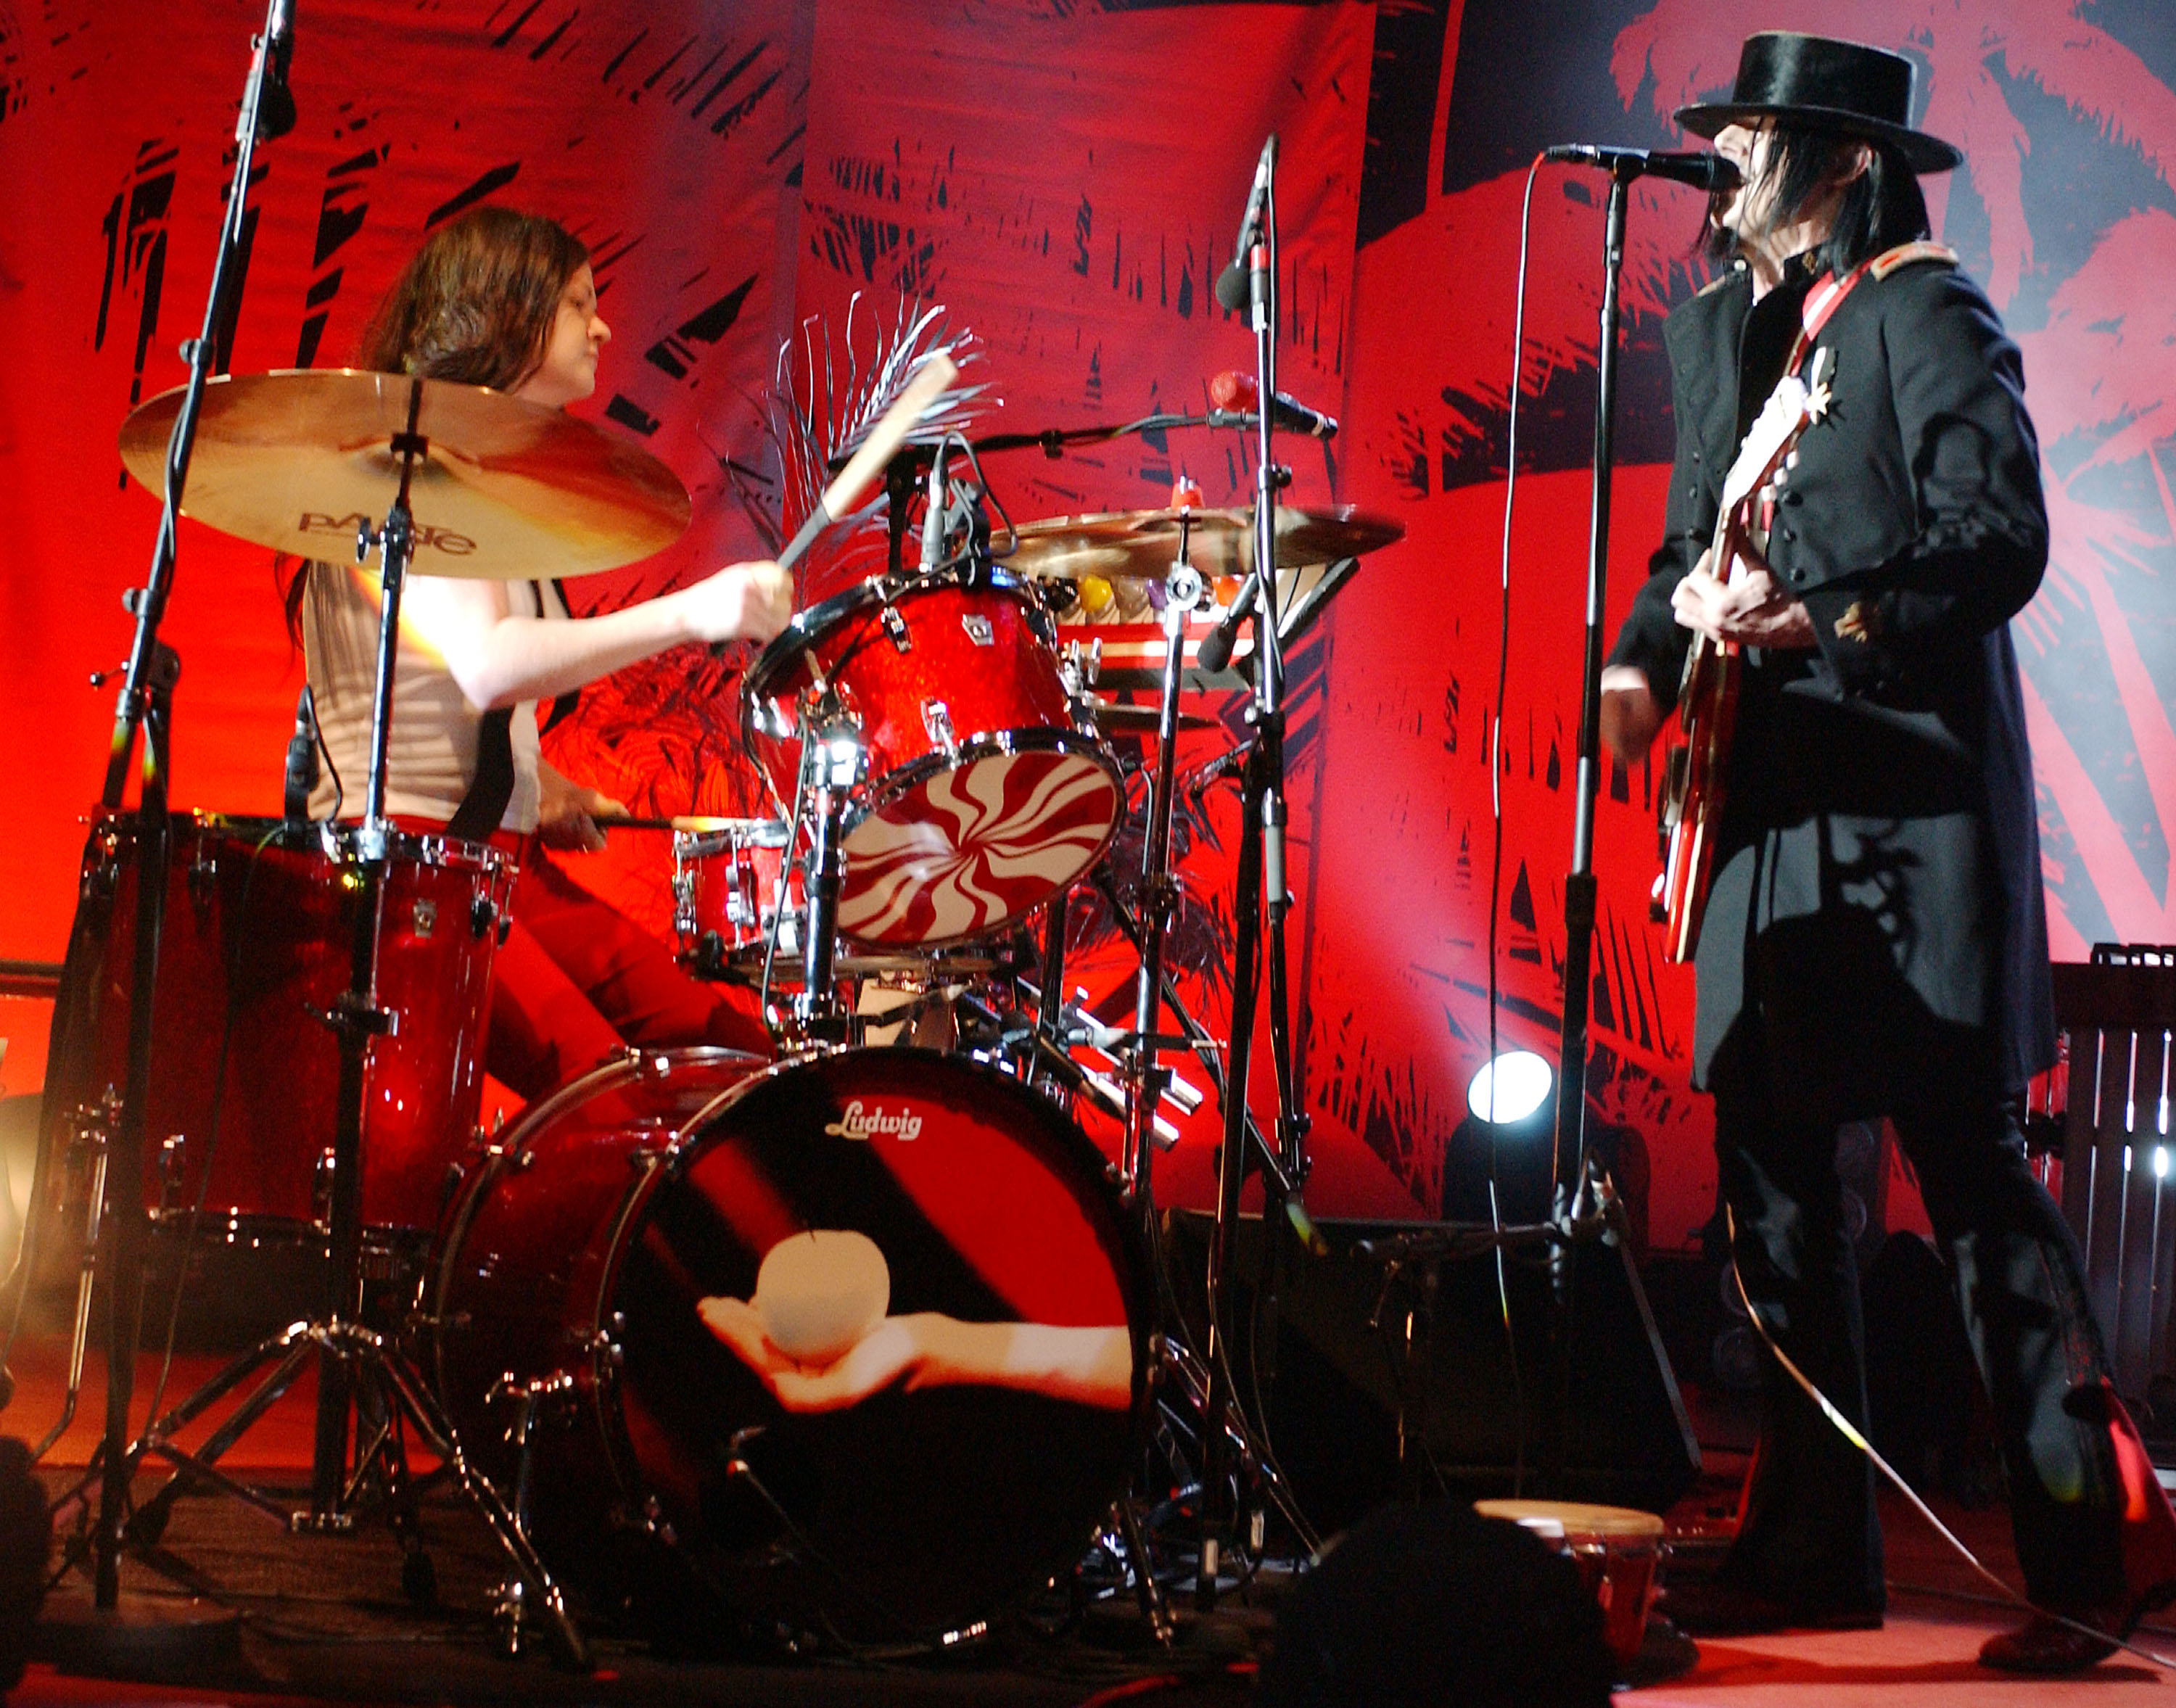 The White Stripes performing at the Hammersmith Appollo Nov. 5, 2005.